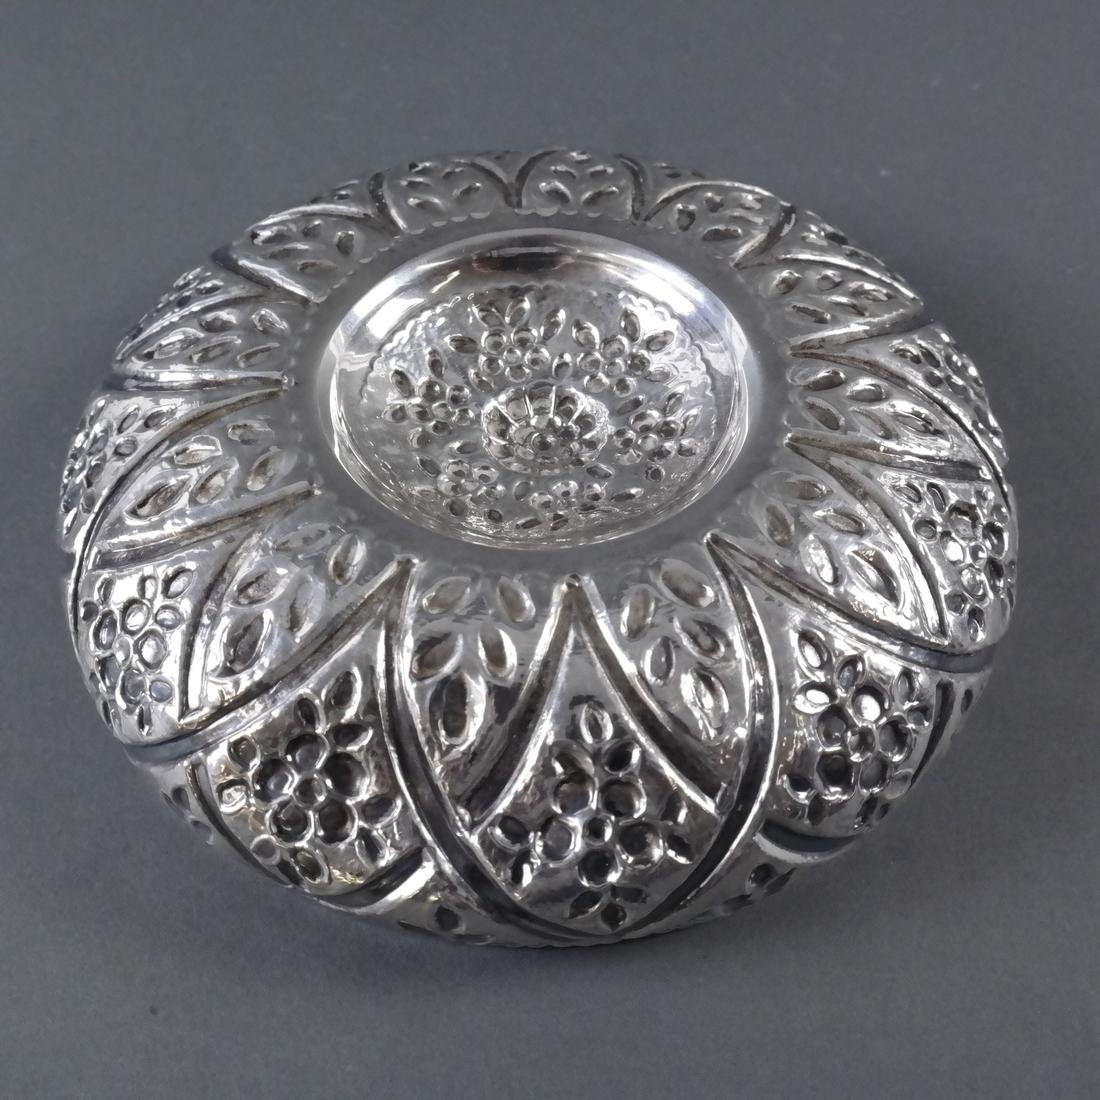 .900 Standard Silver Decorated Bowl - 7